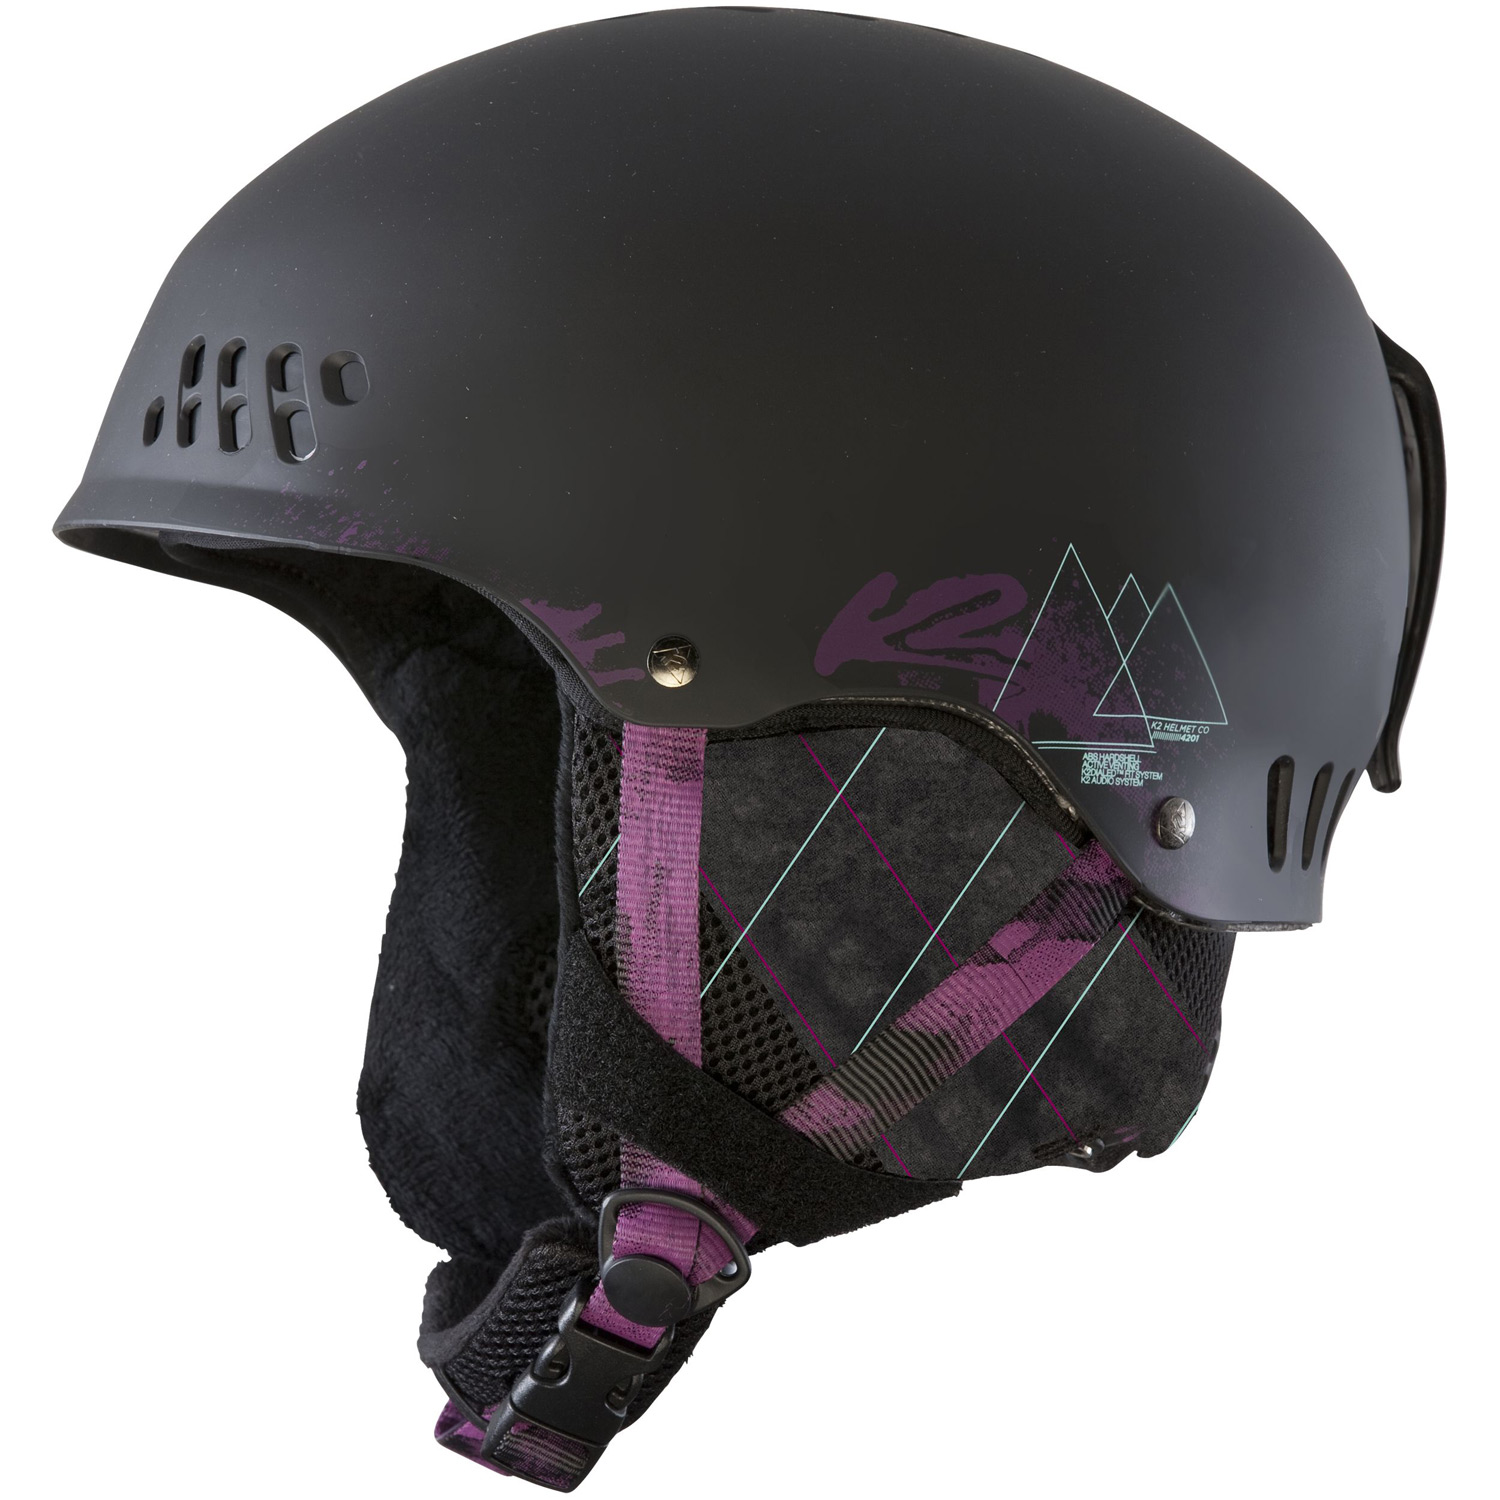 Ski This clean Hard-Shell design gives you all the comfort and durability you need with the style that you demand. Keep a cool head on and off the slopes by opening or closing the vents with the flip of a switch.Key Features of the K2 Emphasis Ski Helmet: Weight: 490g Helmet Construction: Hardshell Active Matrix Ventilation K2dailed Fit System washable Full-Wrap Liner System Tool free removable goggle strap Level 2 Baseline Audio System removable bandana - $74.95